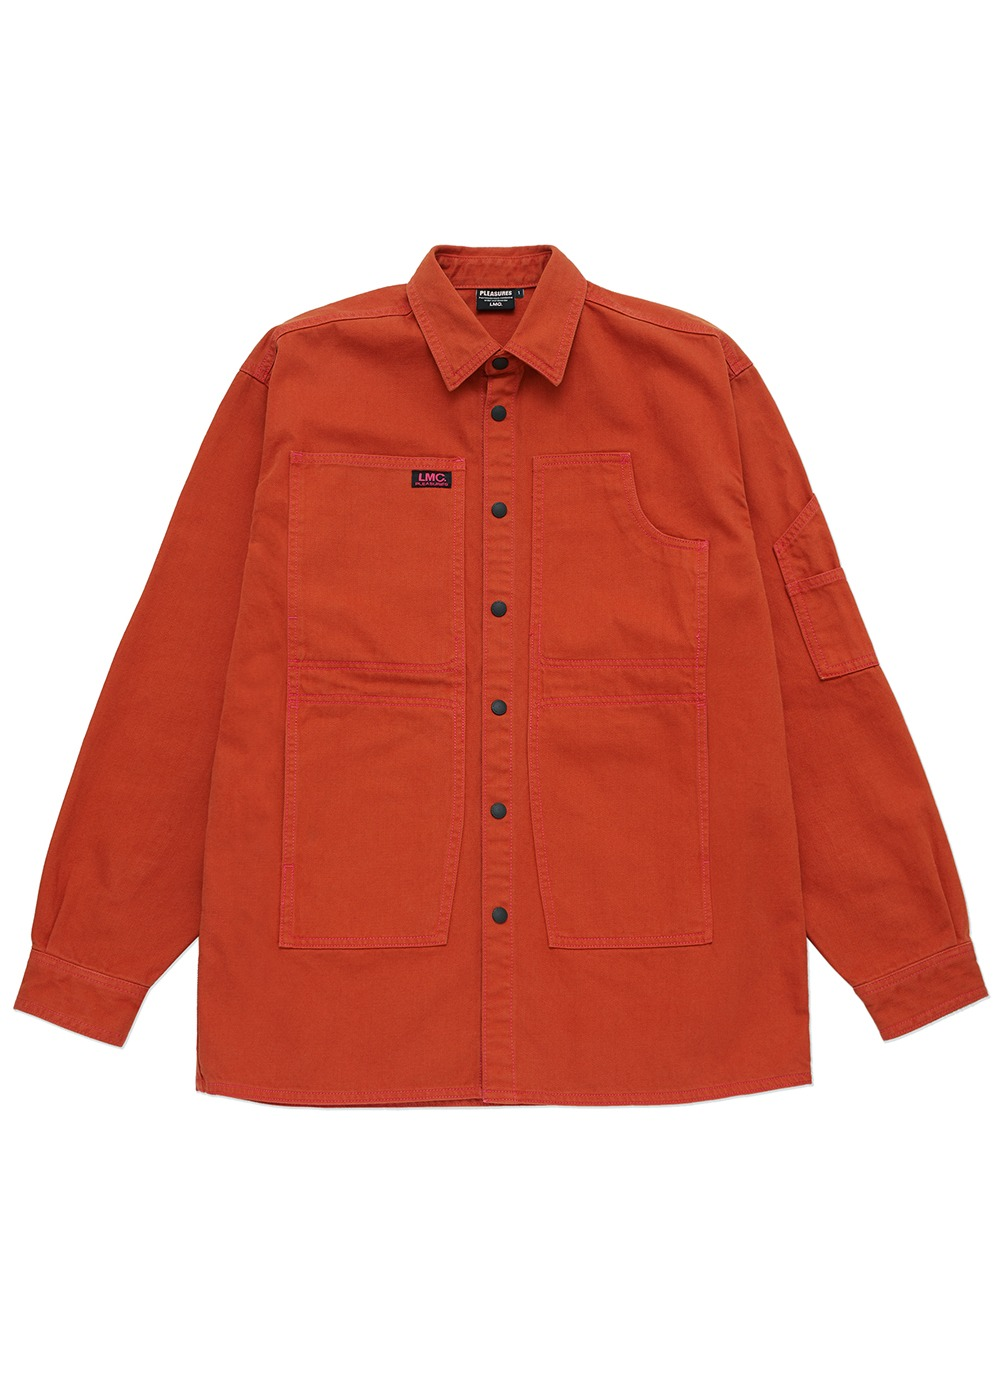 LMC X PLEASURES CRUSH DENIM SHIRT JACKET brick orange